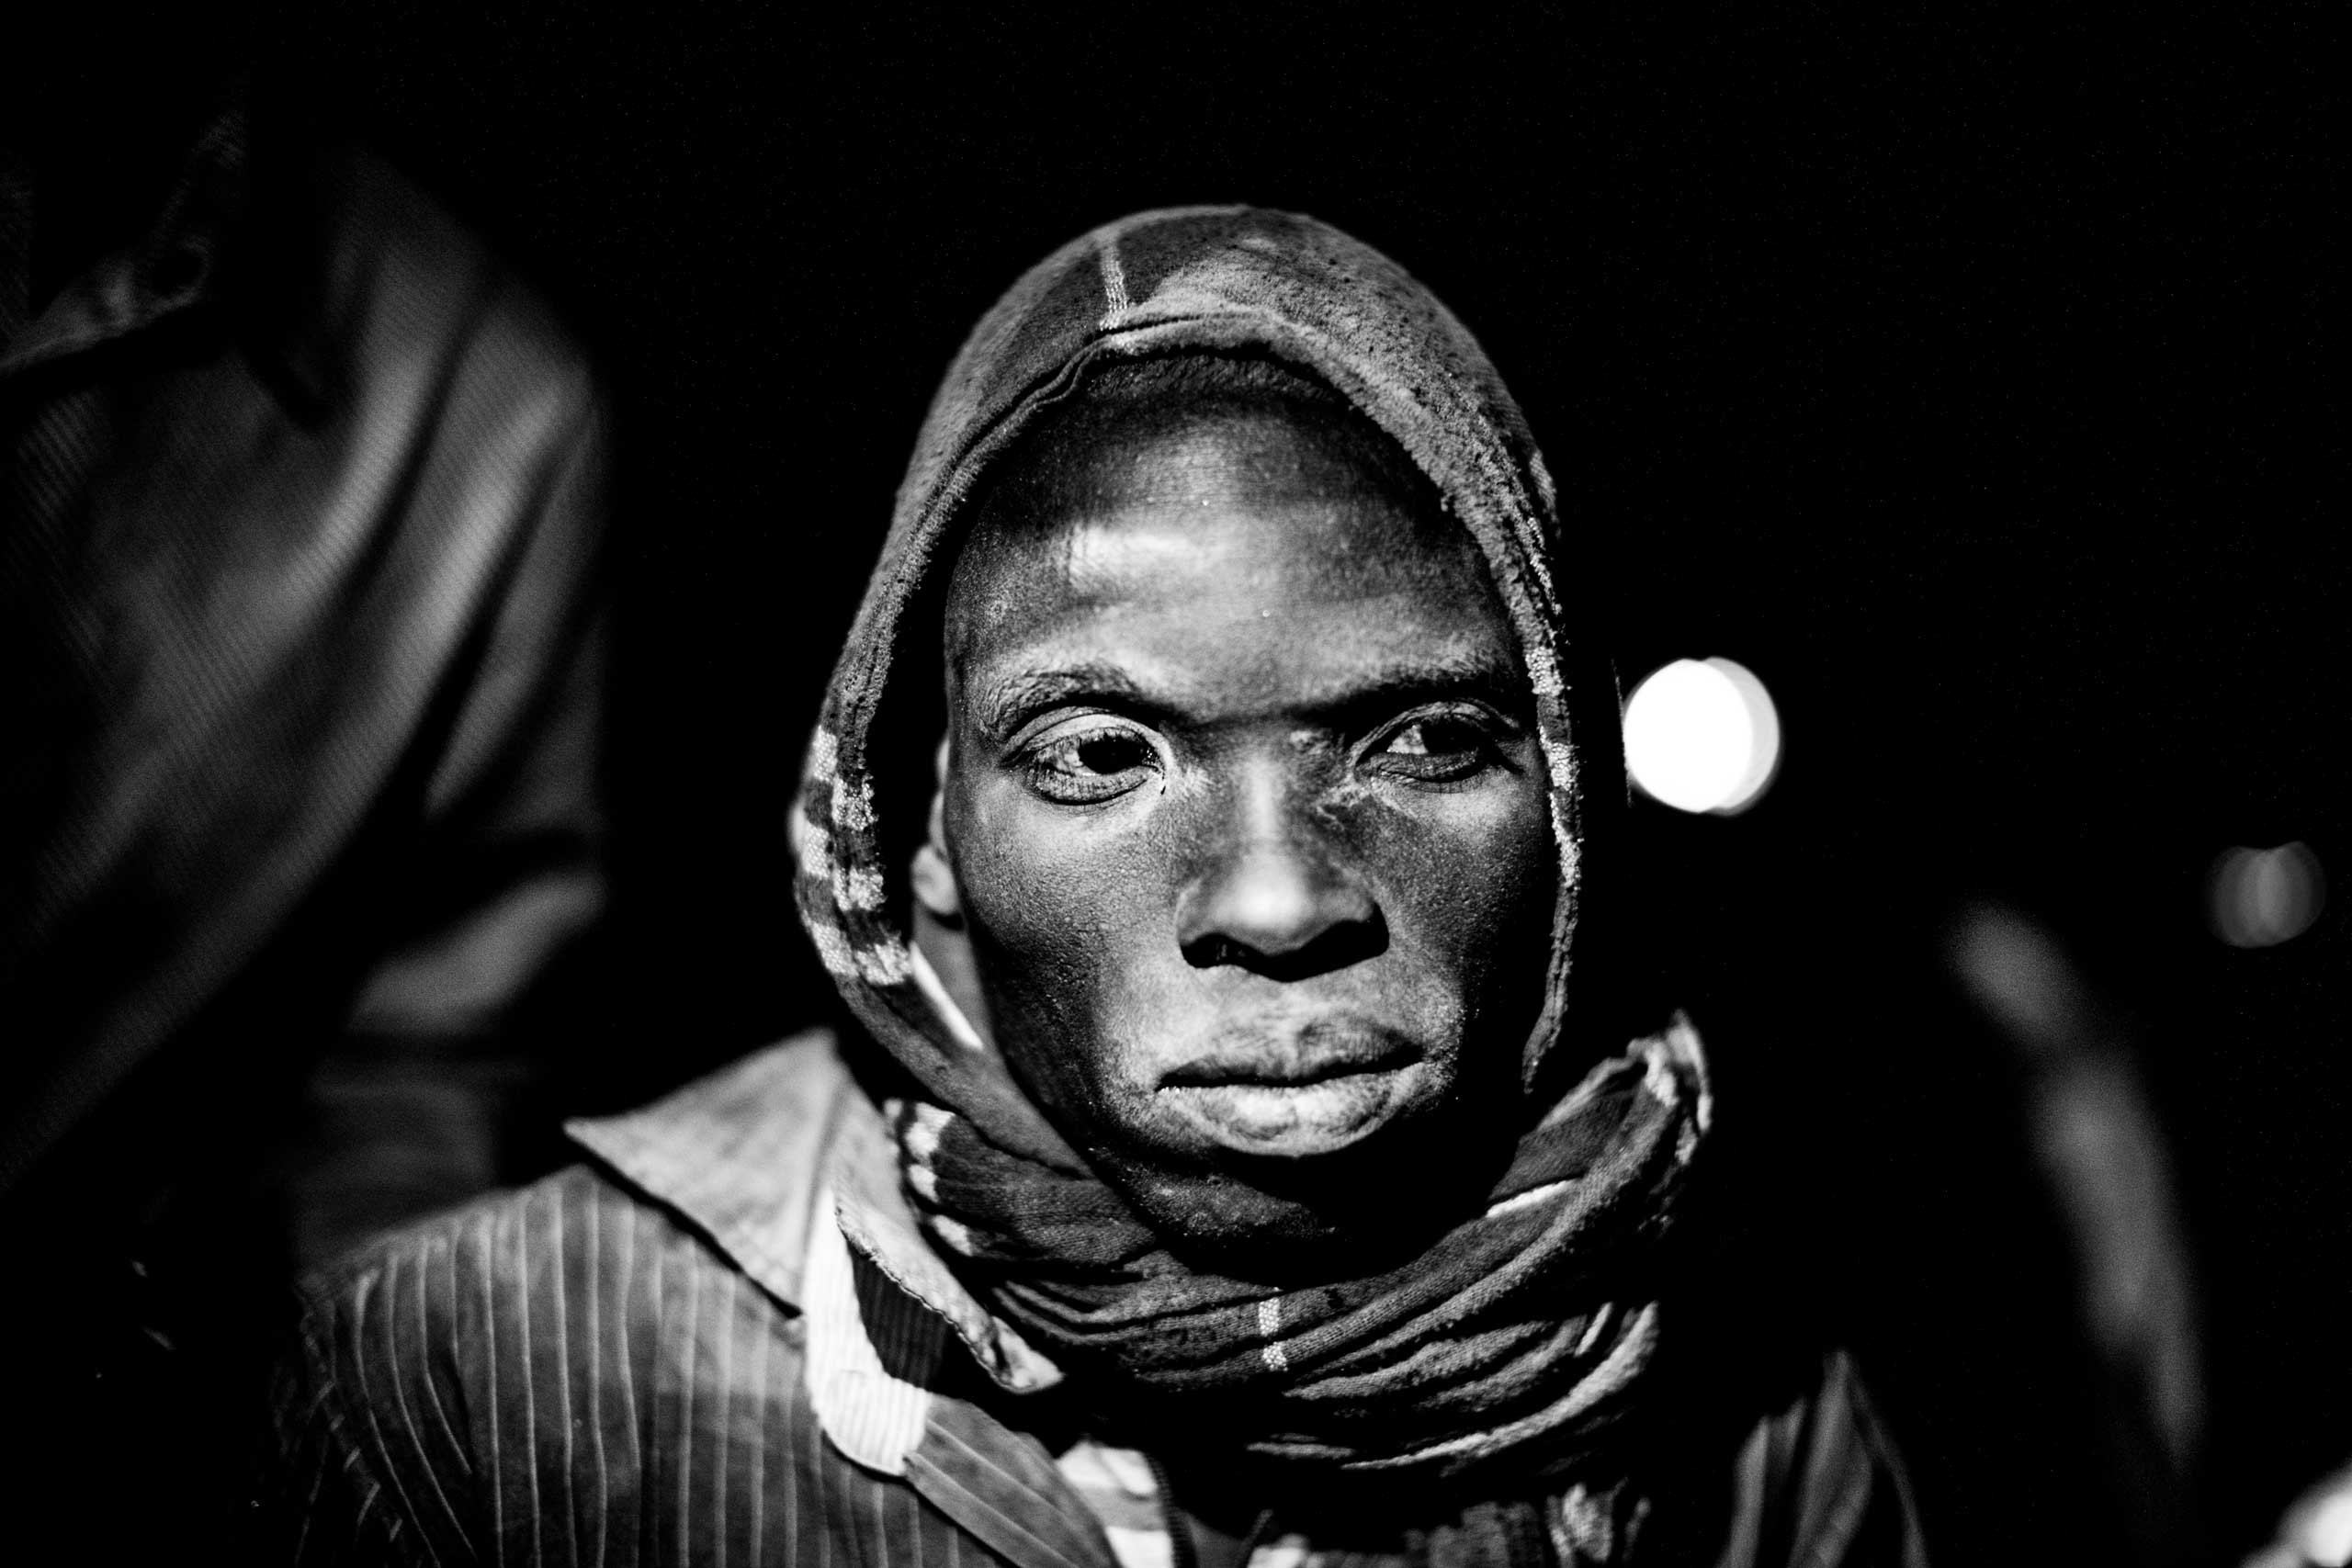 Dust covers the face of a young migrant headed to Libya.